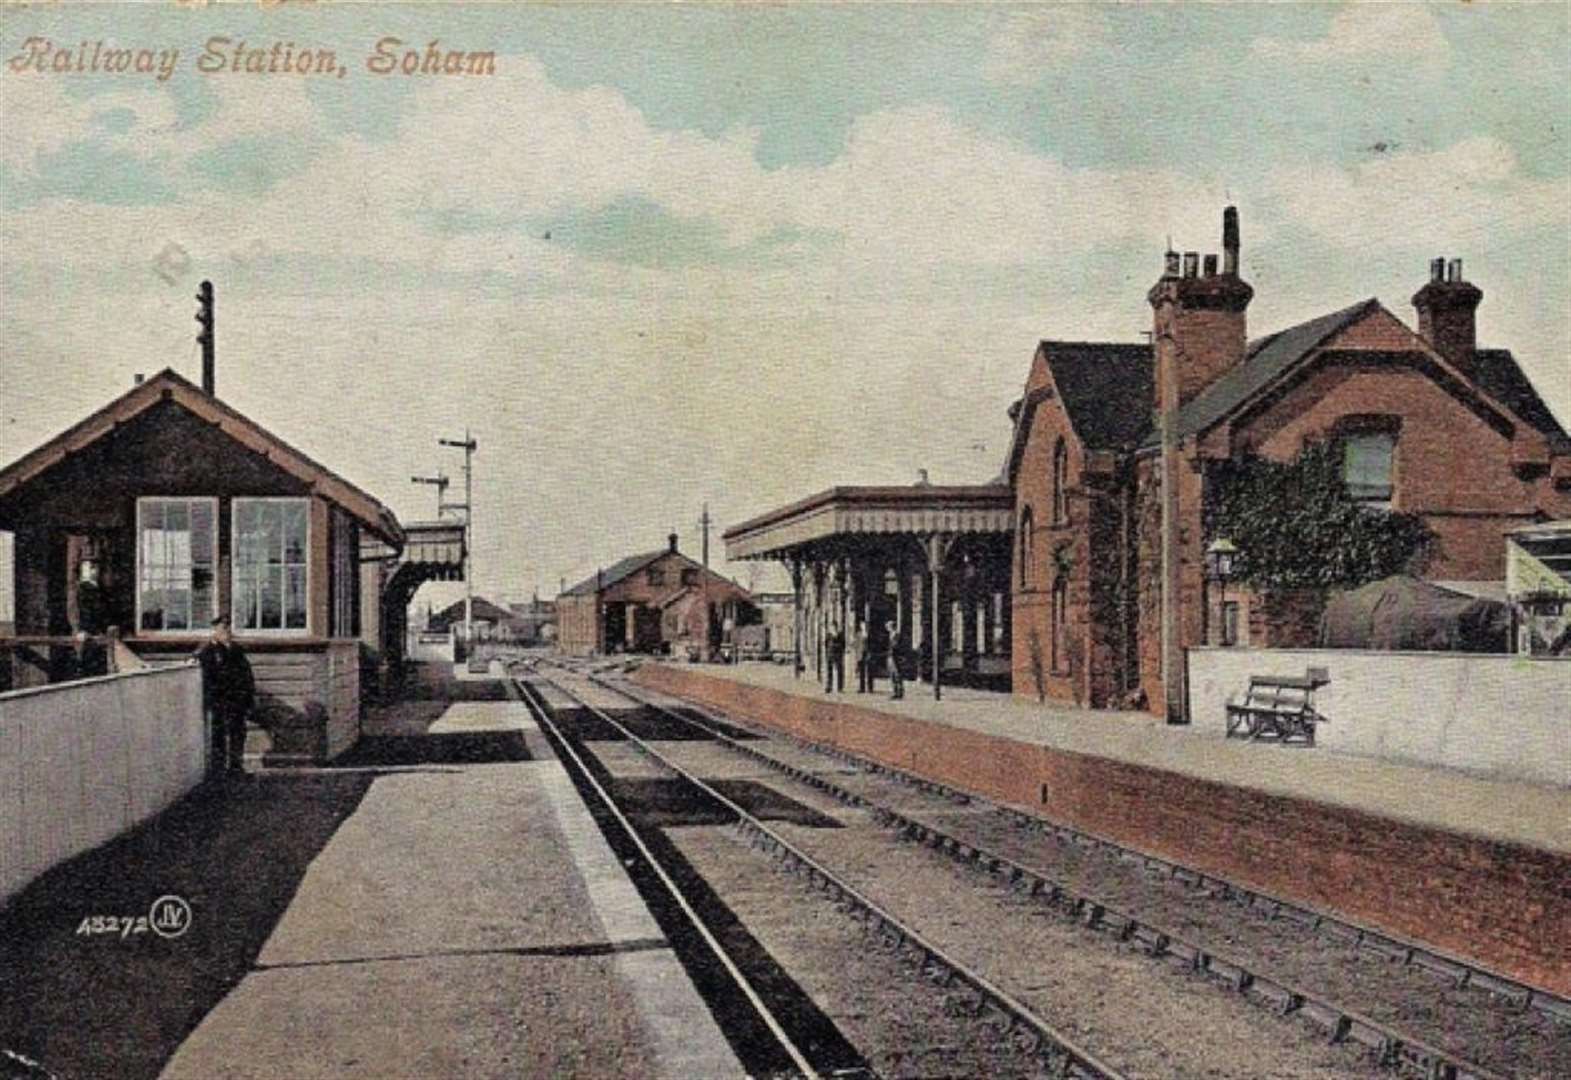 Soham's station could cost £21.8 million